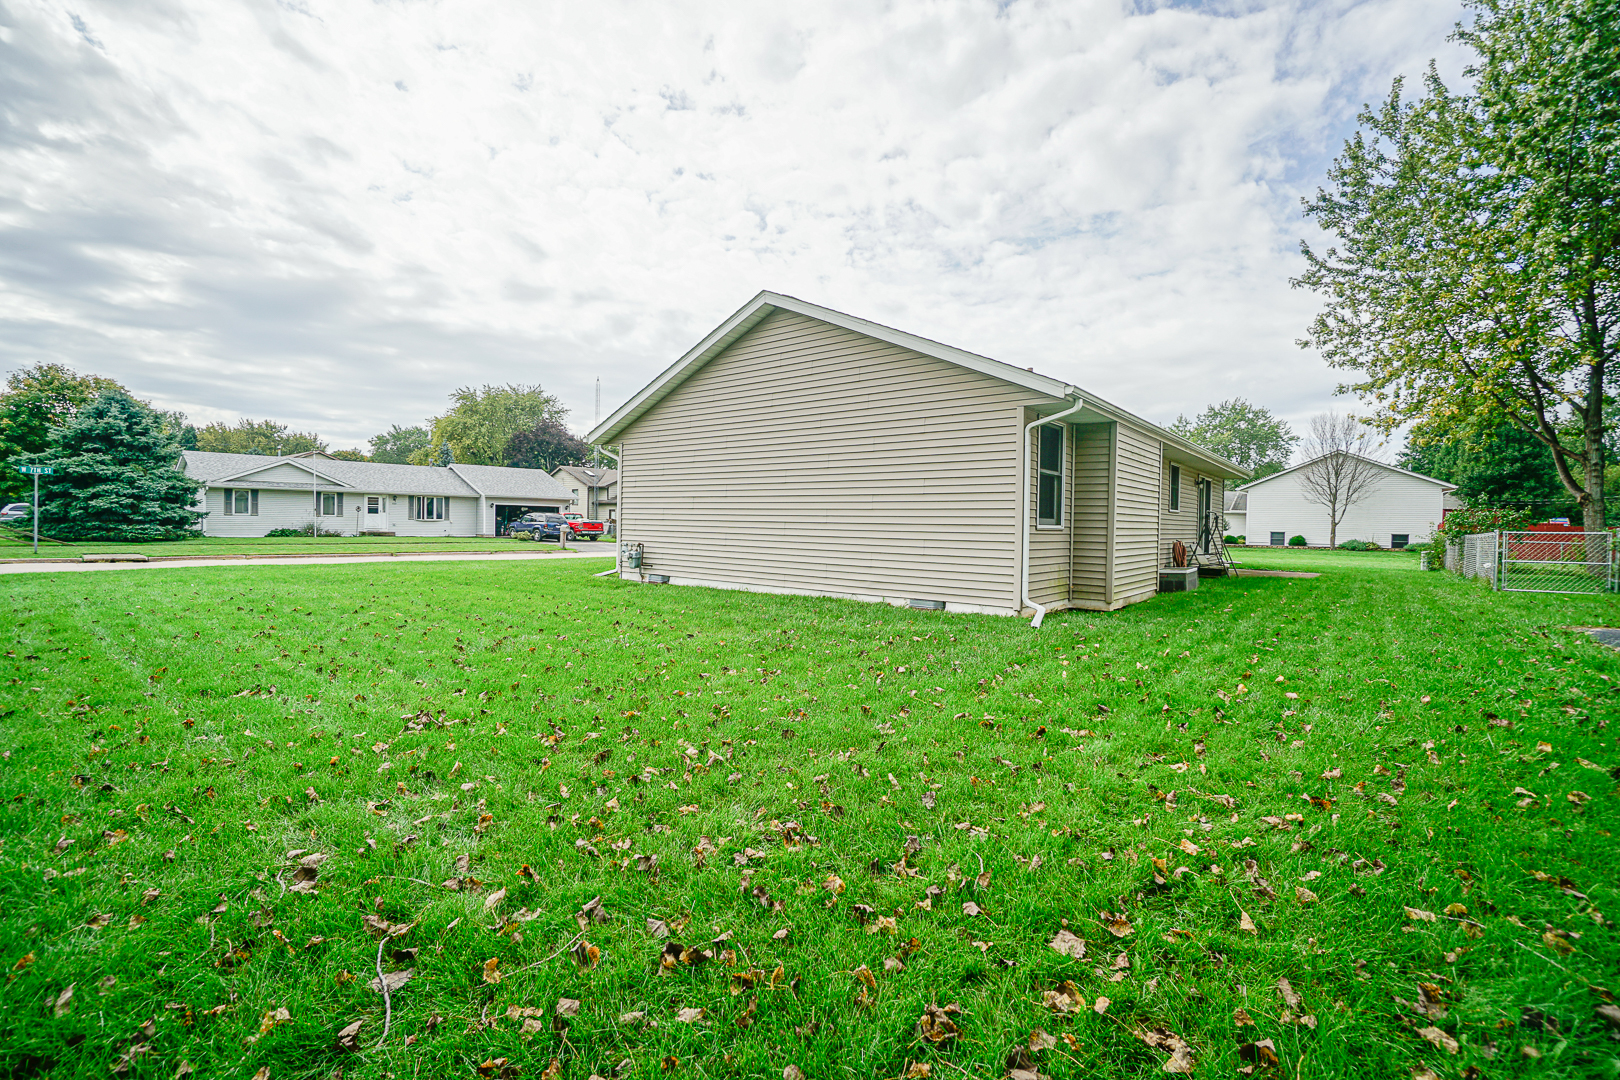 601 West 7th, Belvidere, Illinois, 61008